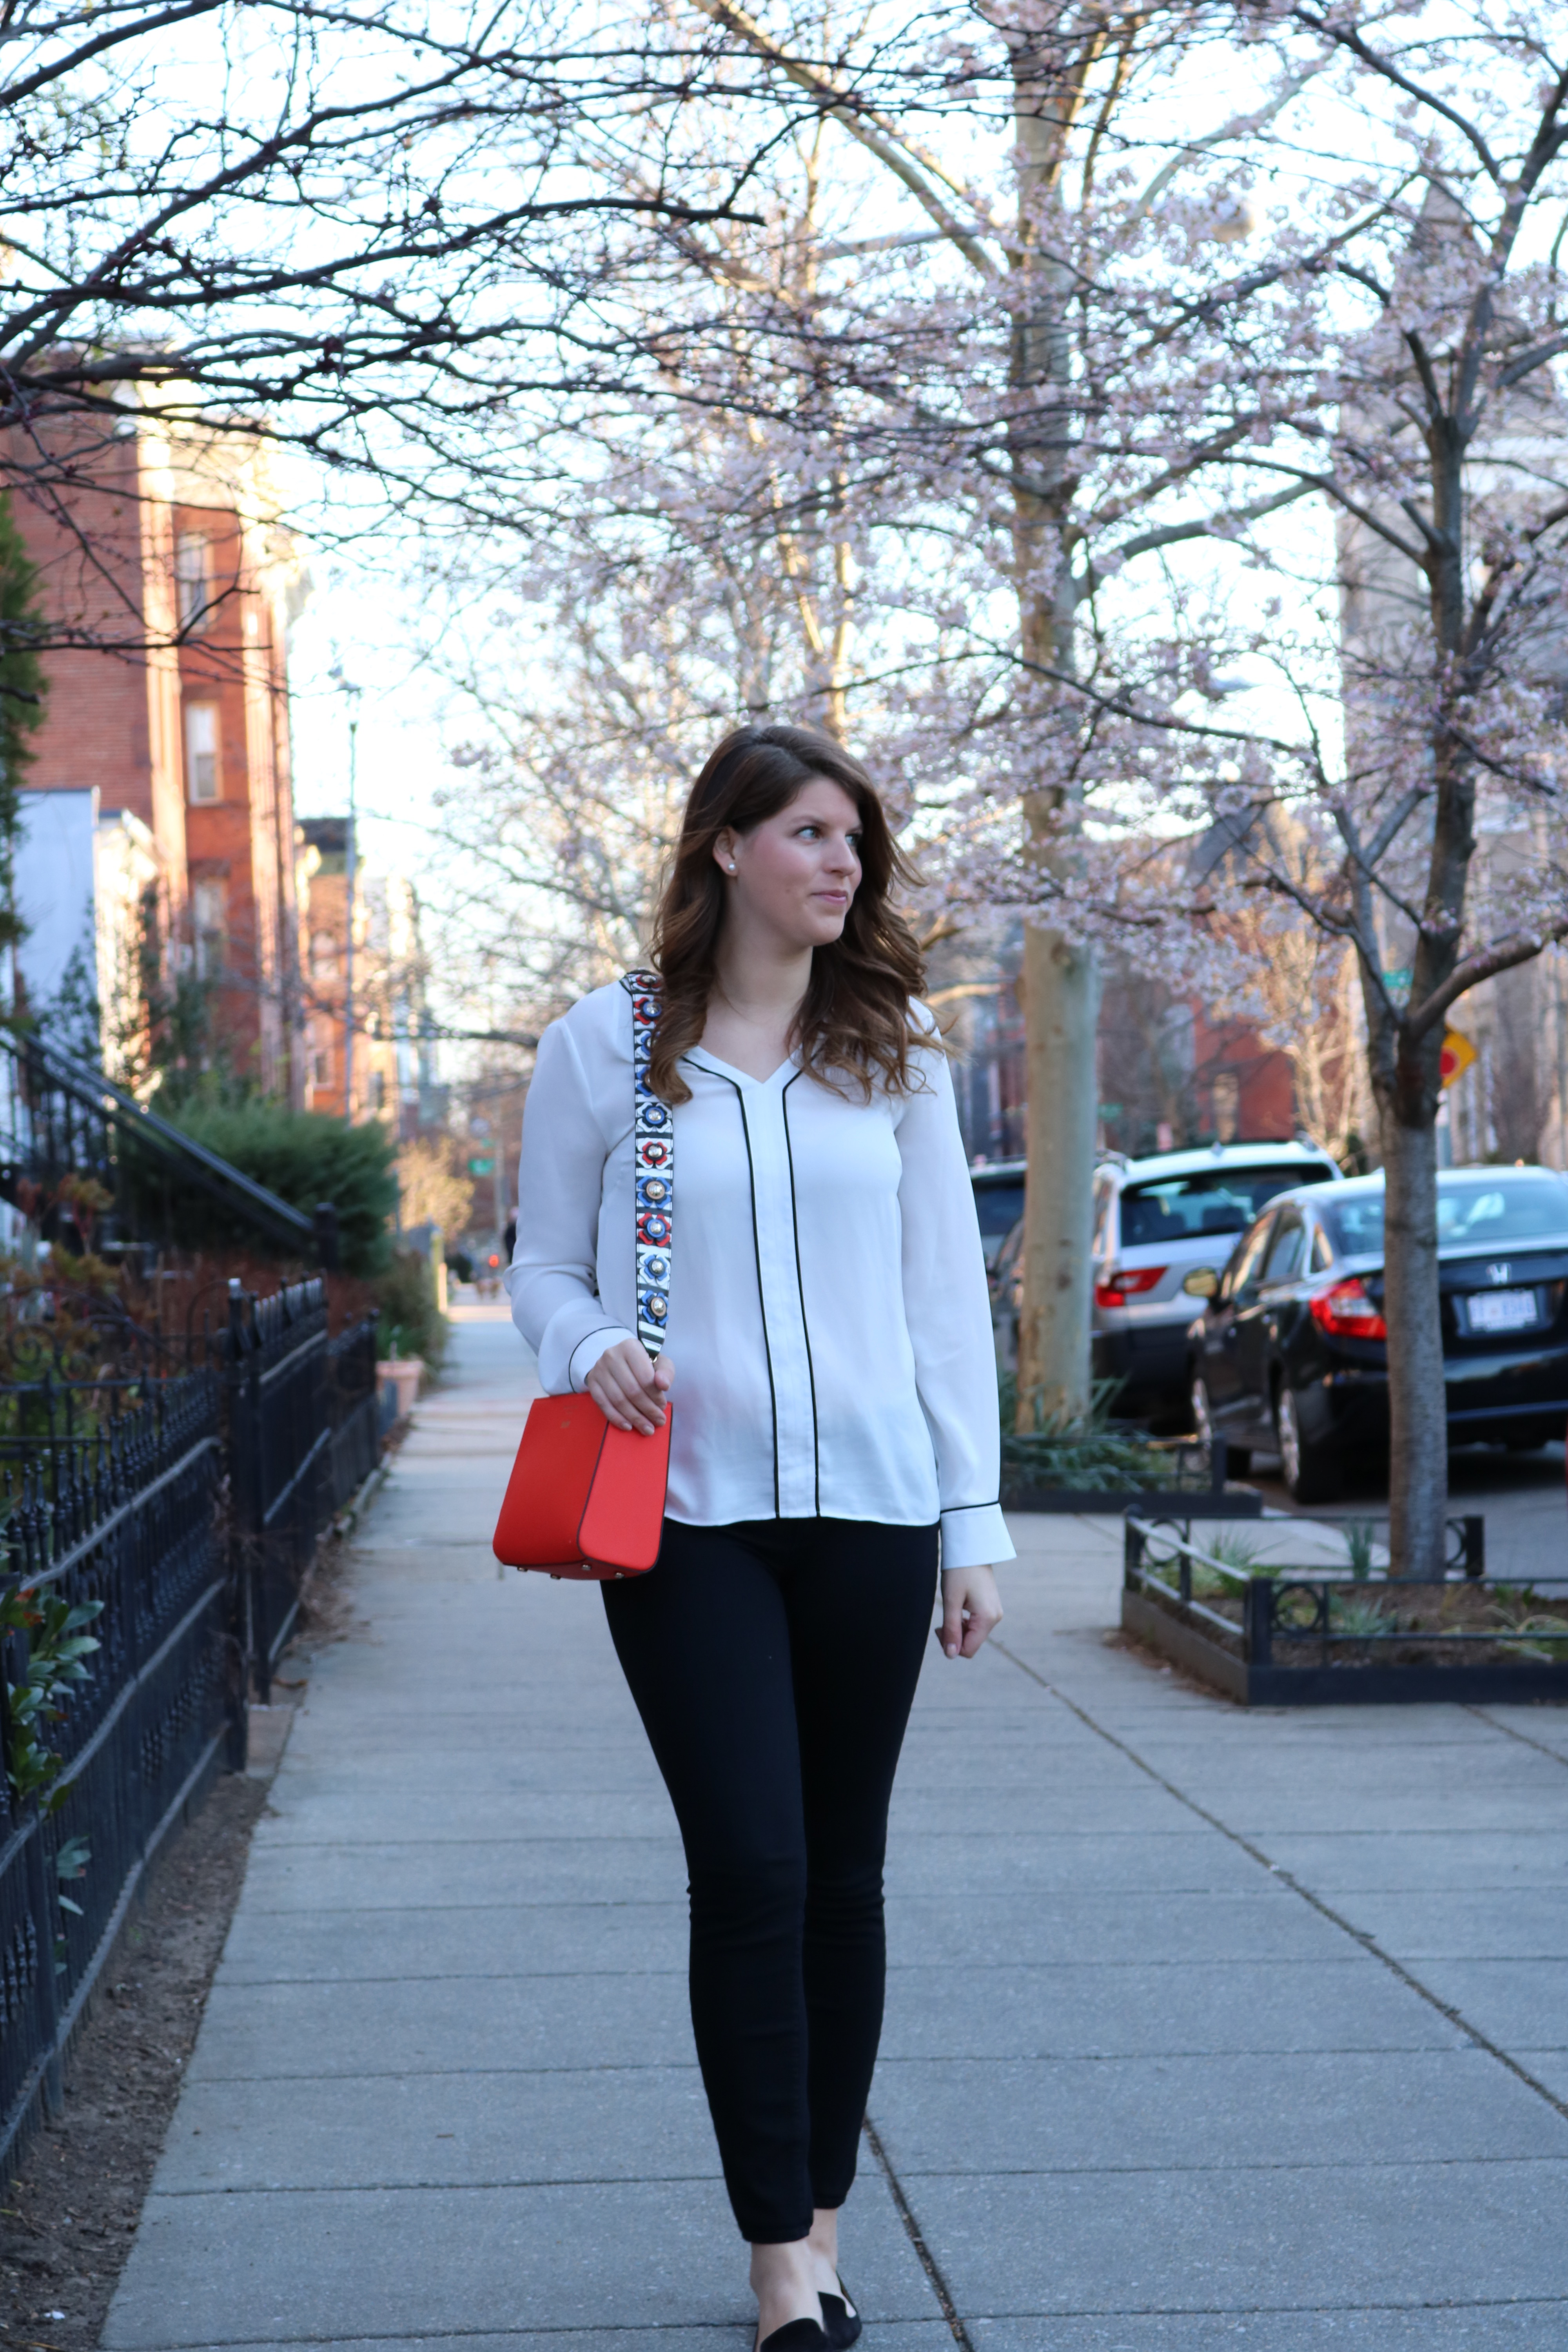 Lifestyle blogger Brianna Manzelli of Bree West sharing tips to get through daylight savings and a perfect transitional spring outfit